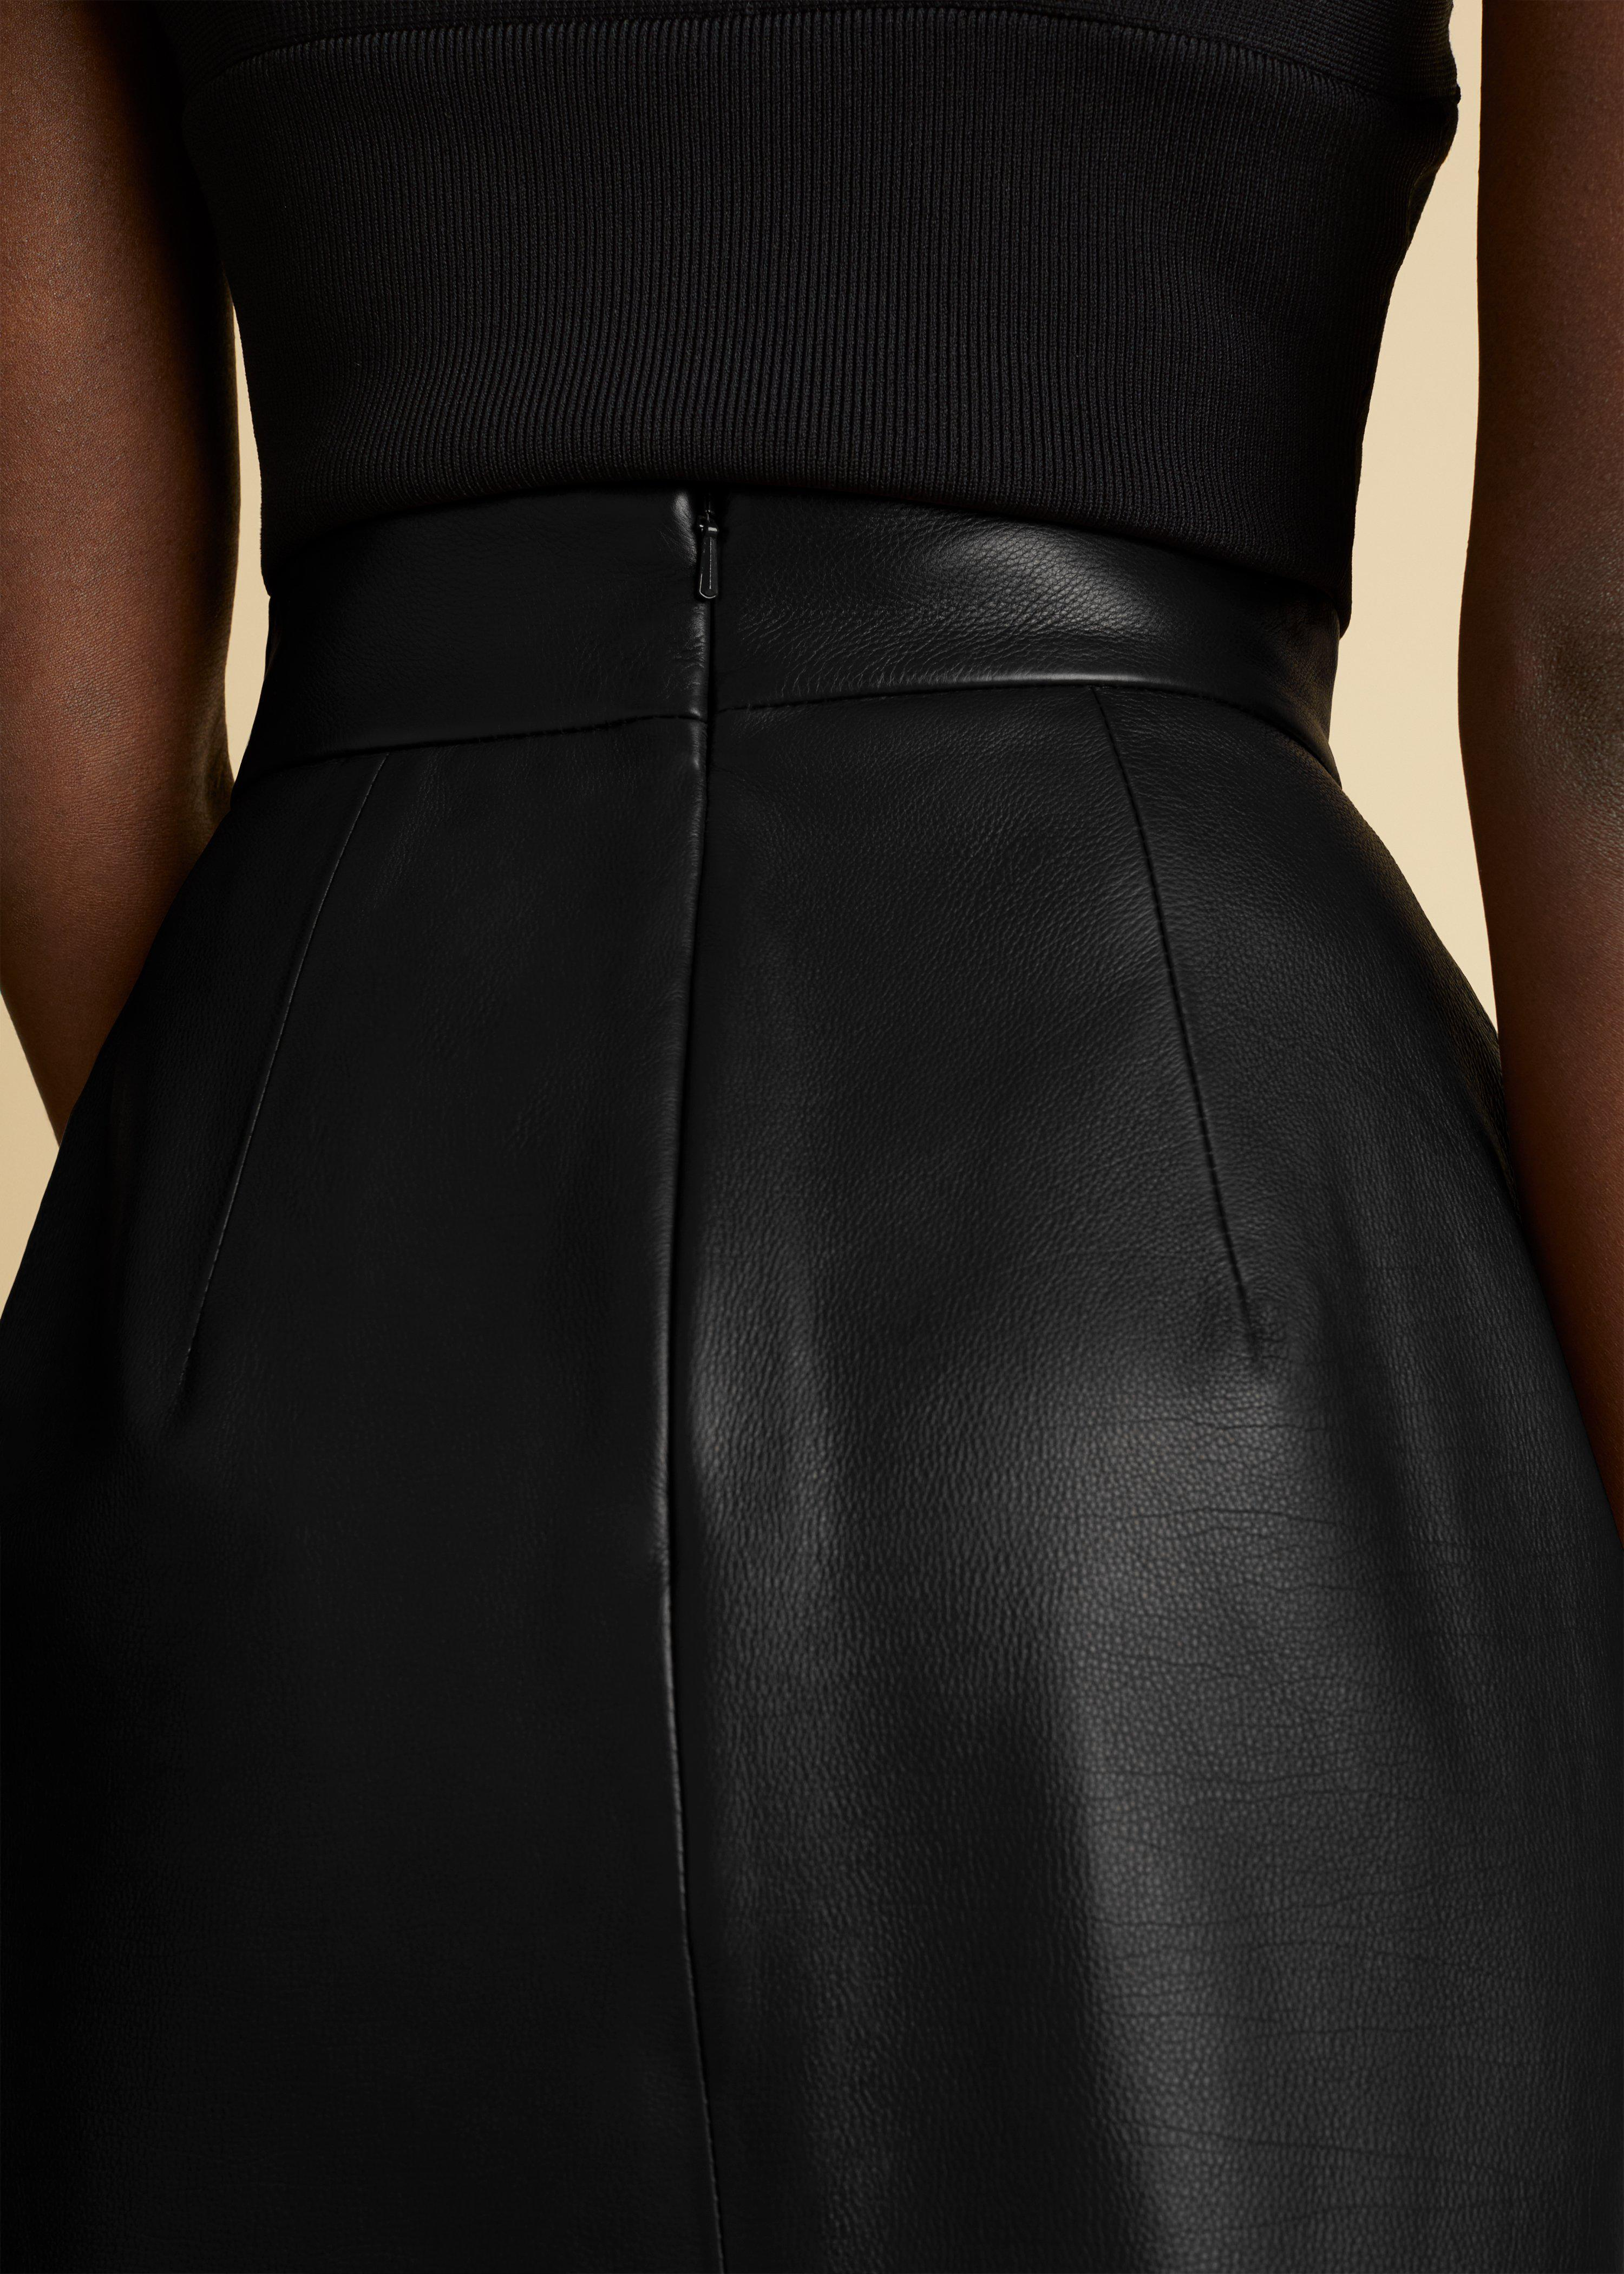 The Eiko Skirt in Black Leather 3